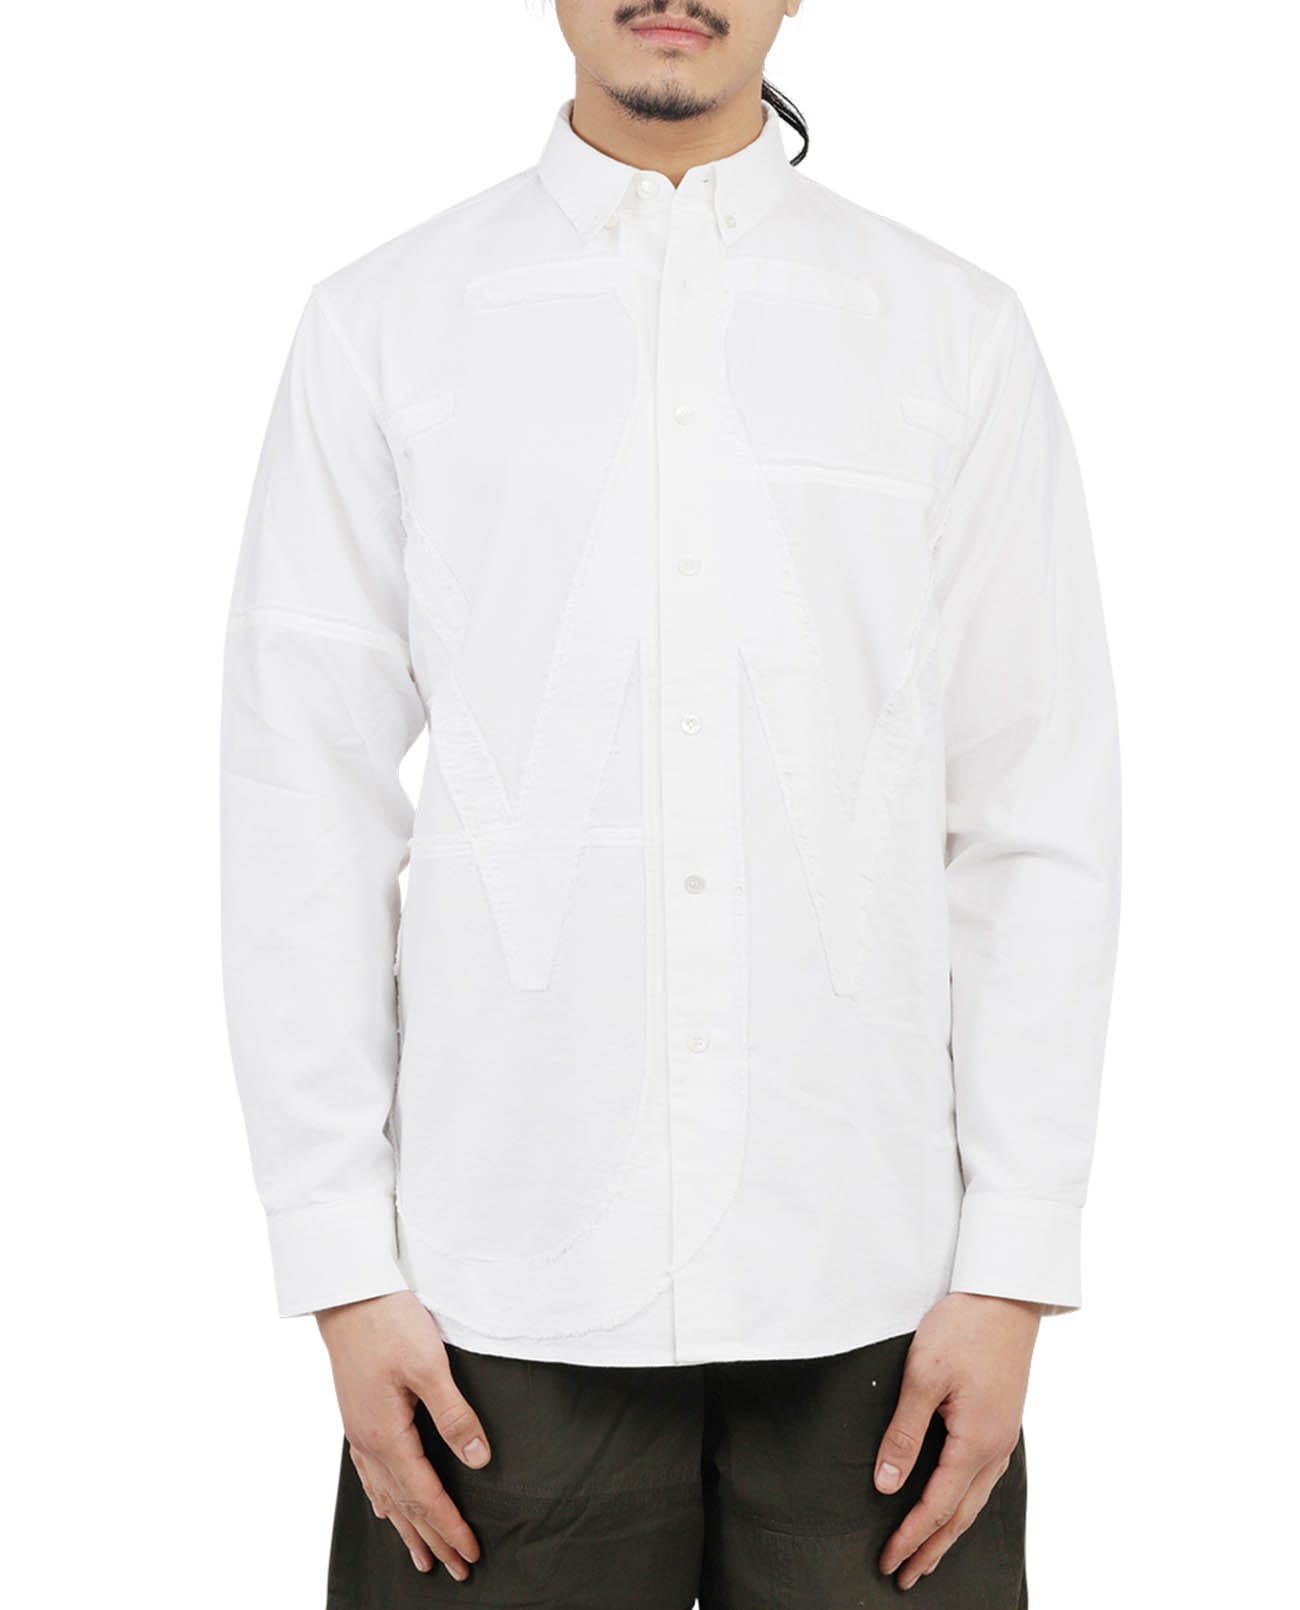 Jw Anderson Downs JW ANDERSON WHITE ANCHOR SHIRT